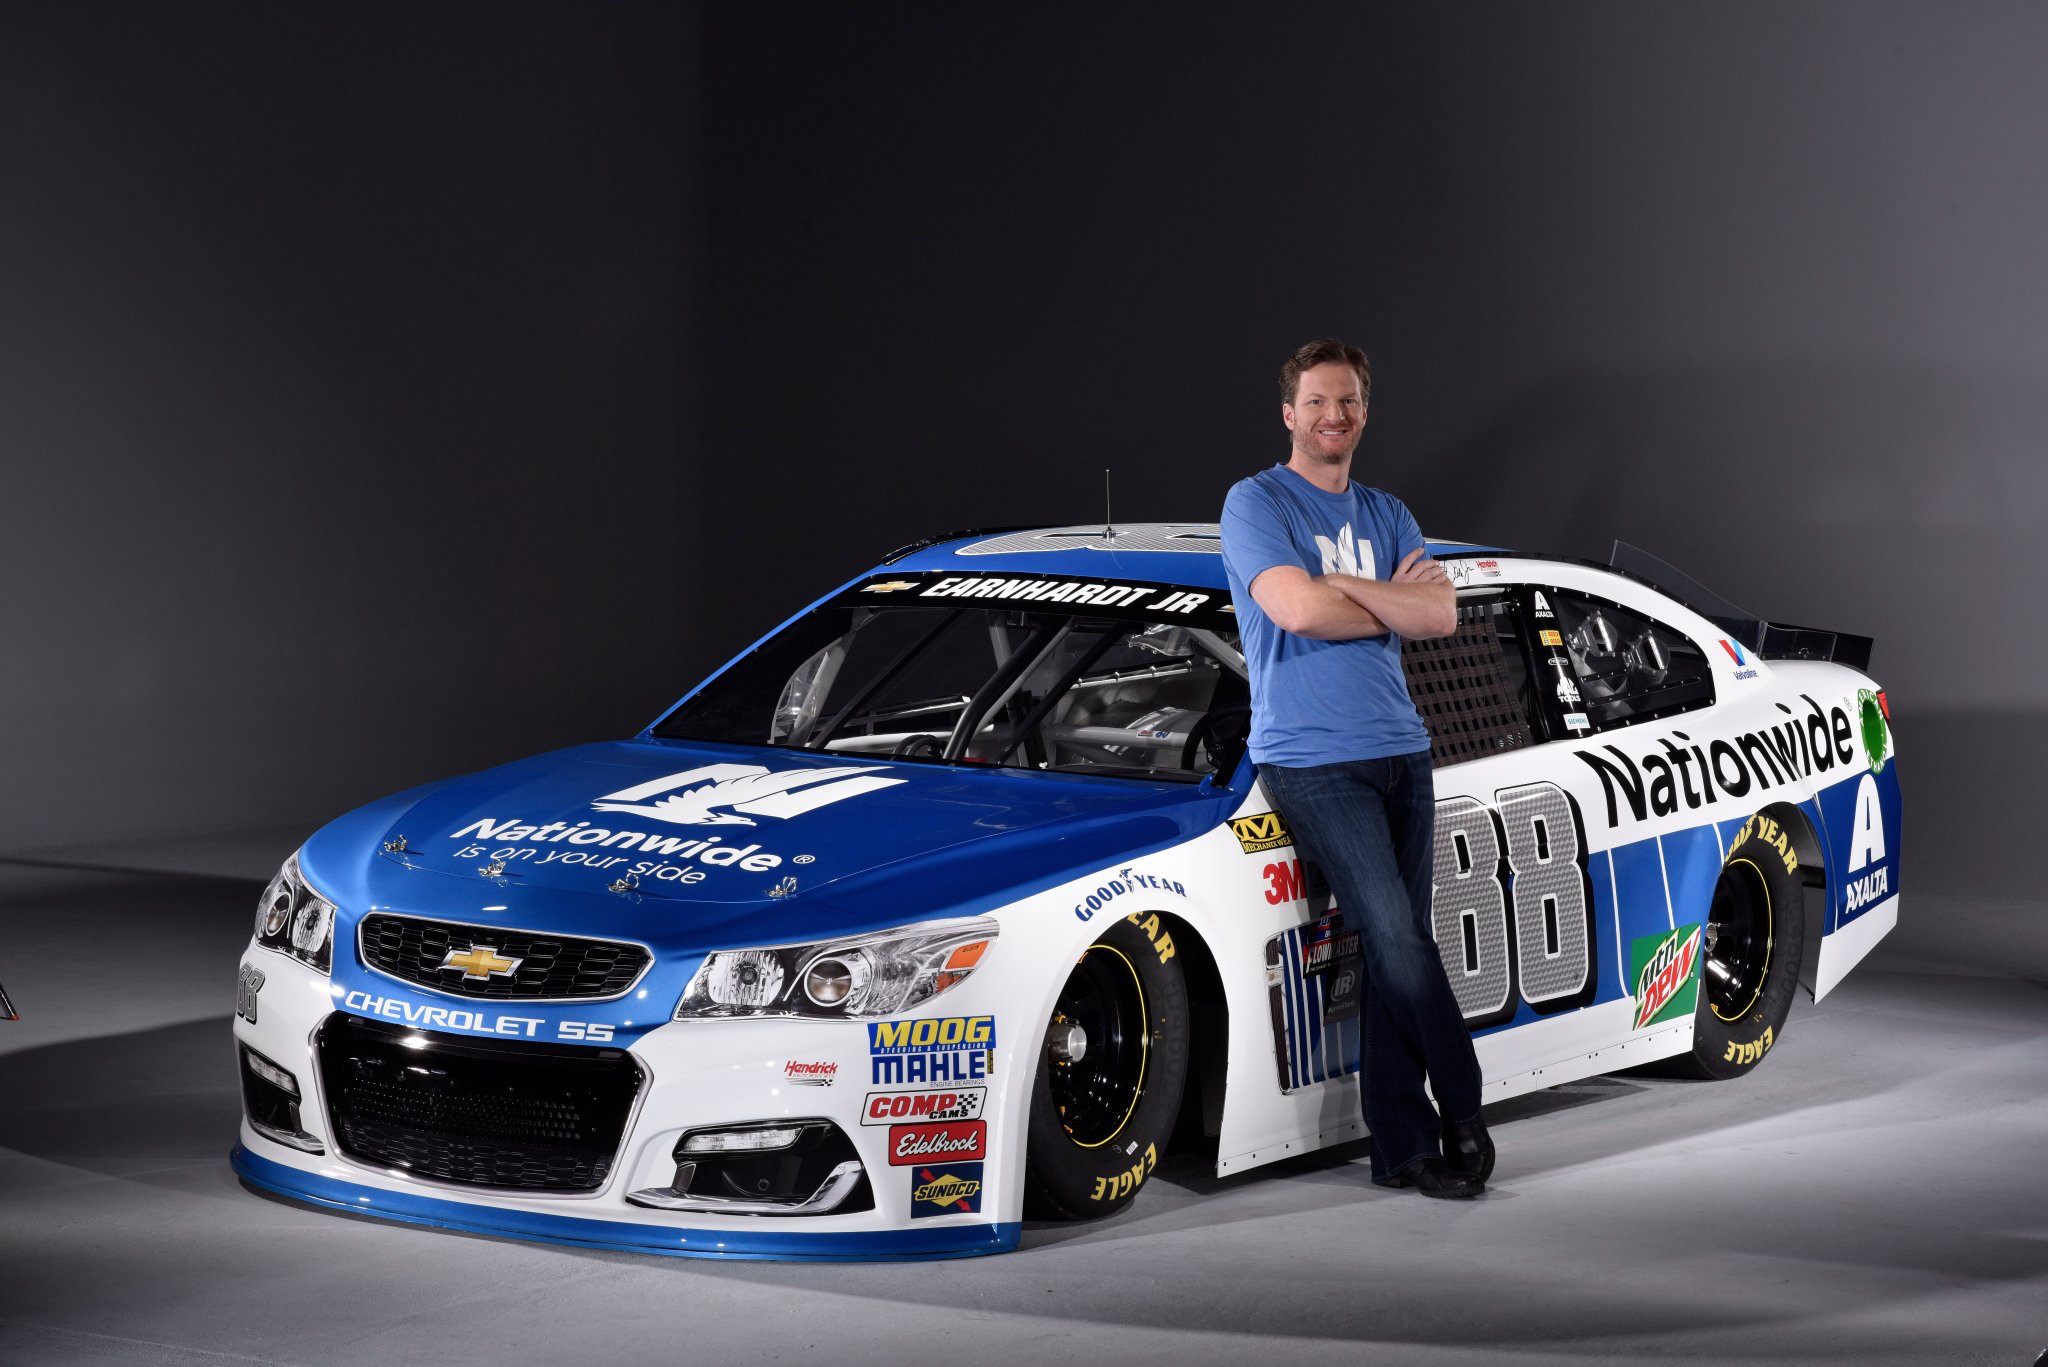 2048x1367 Dale Earnhardt Jr and his 88 Nationwide 2017 car